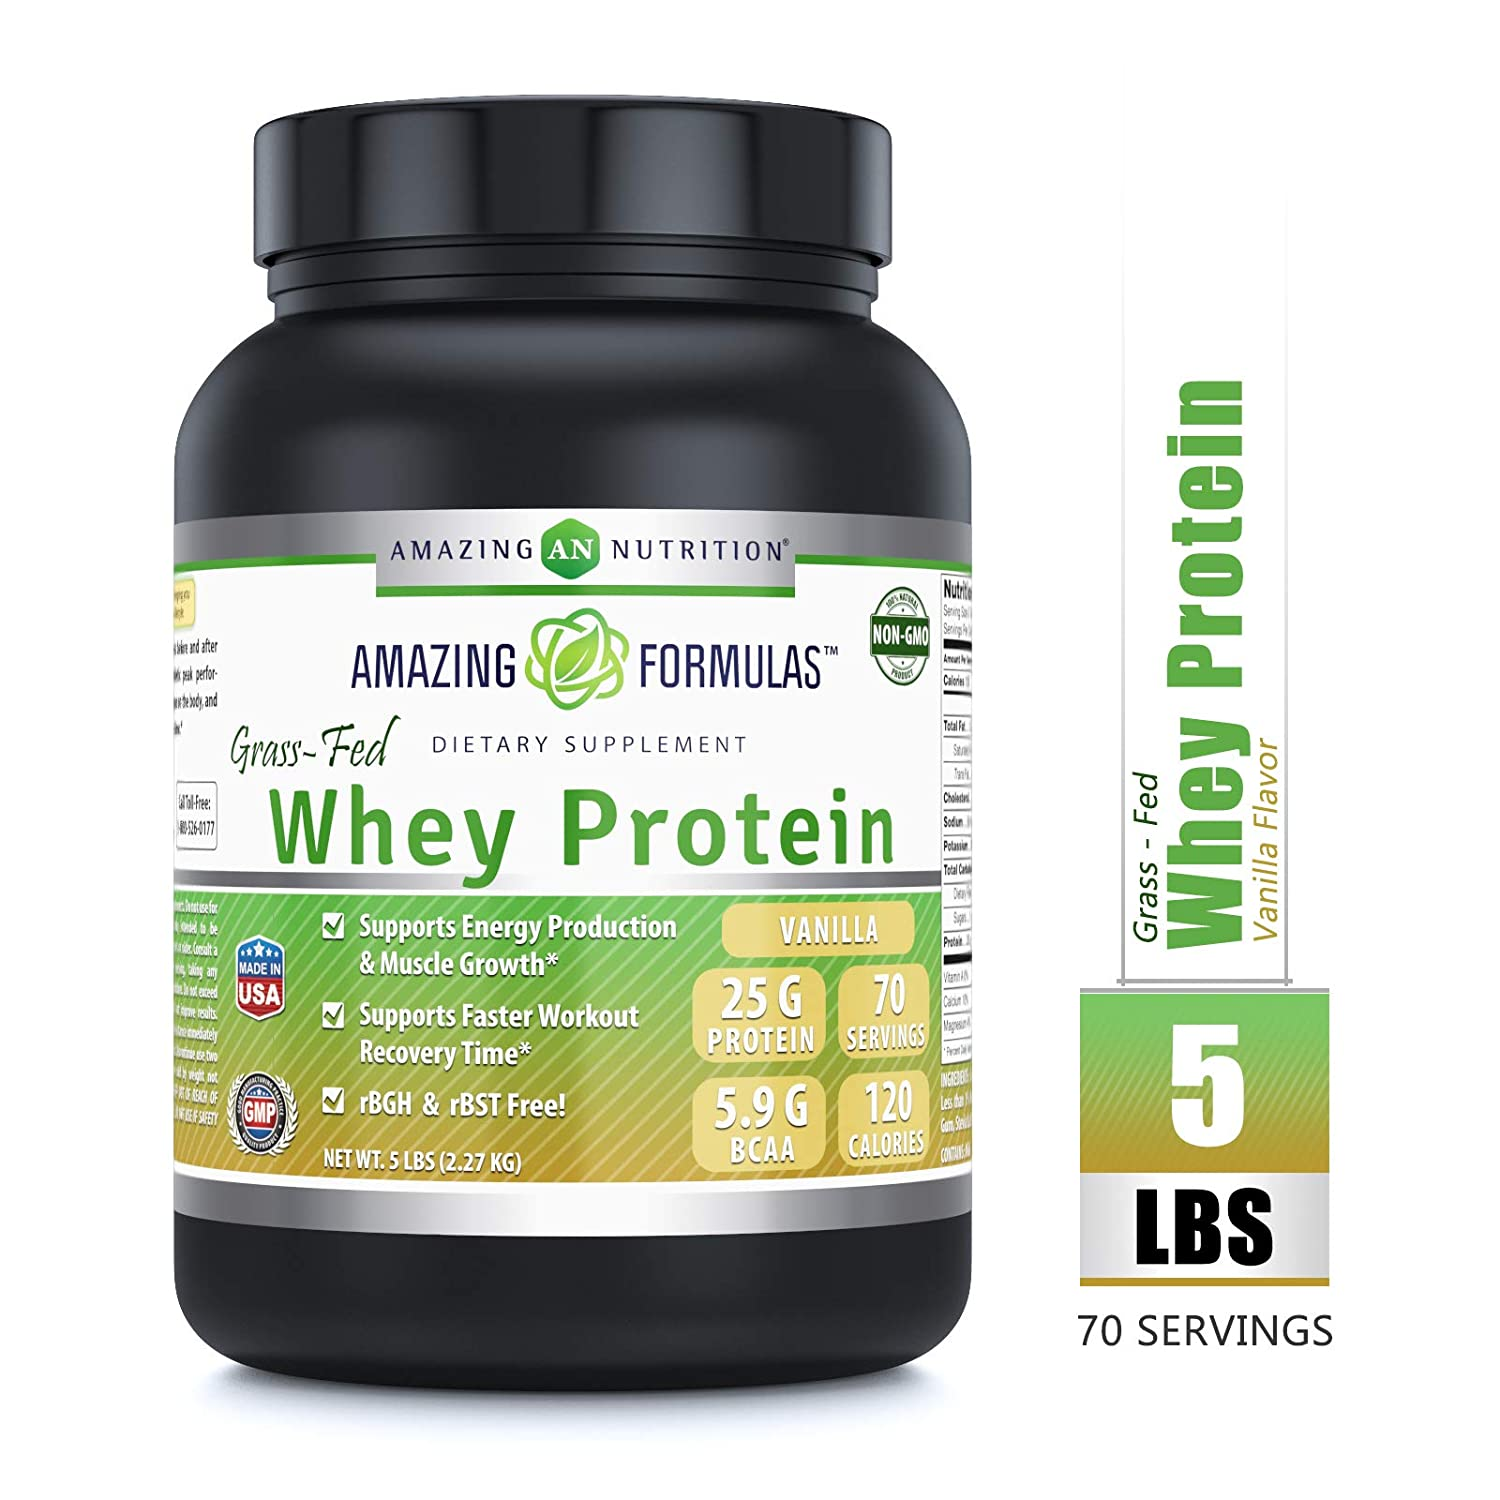 Cold Processed Grass Fed Whey vs High temperature Processed Whey